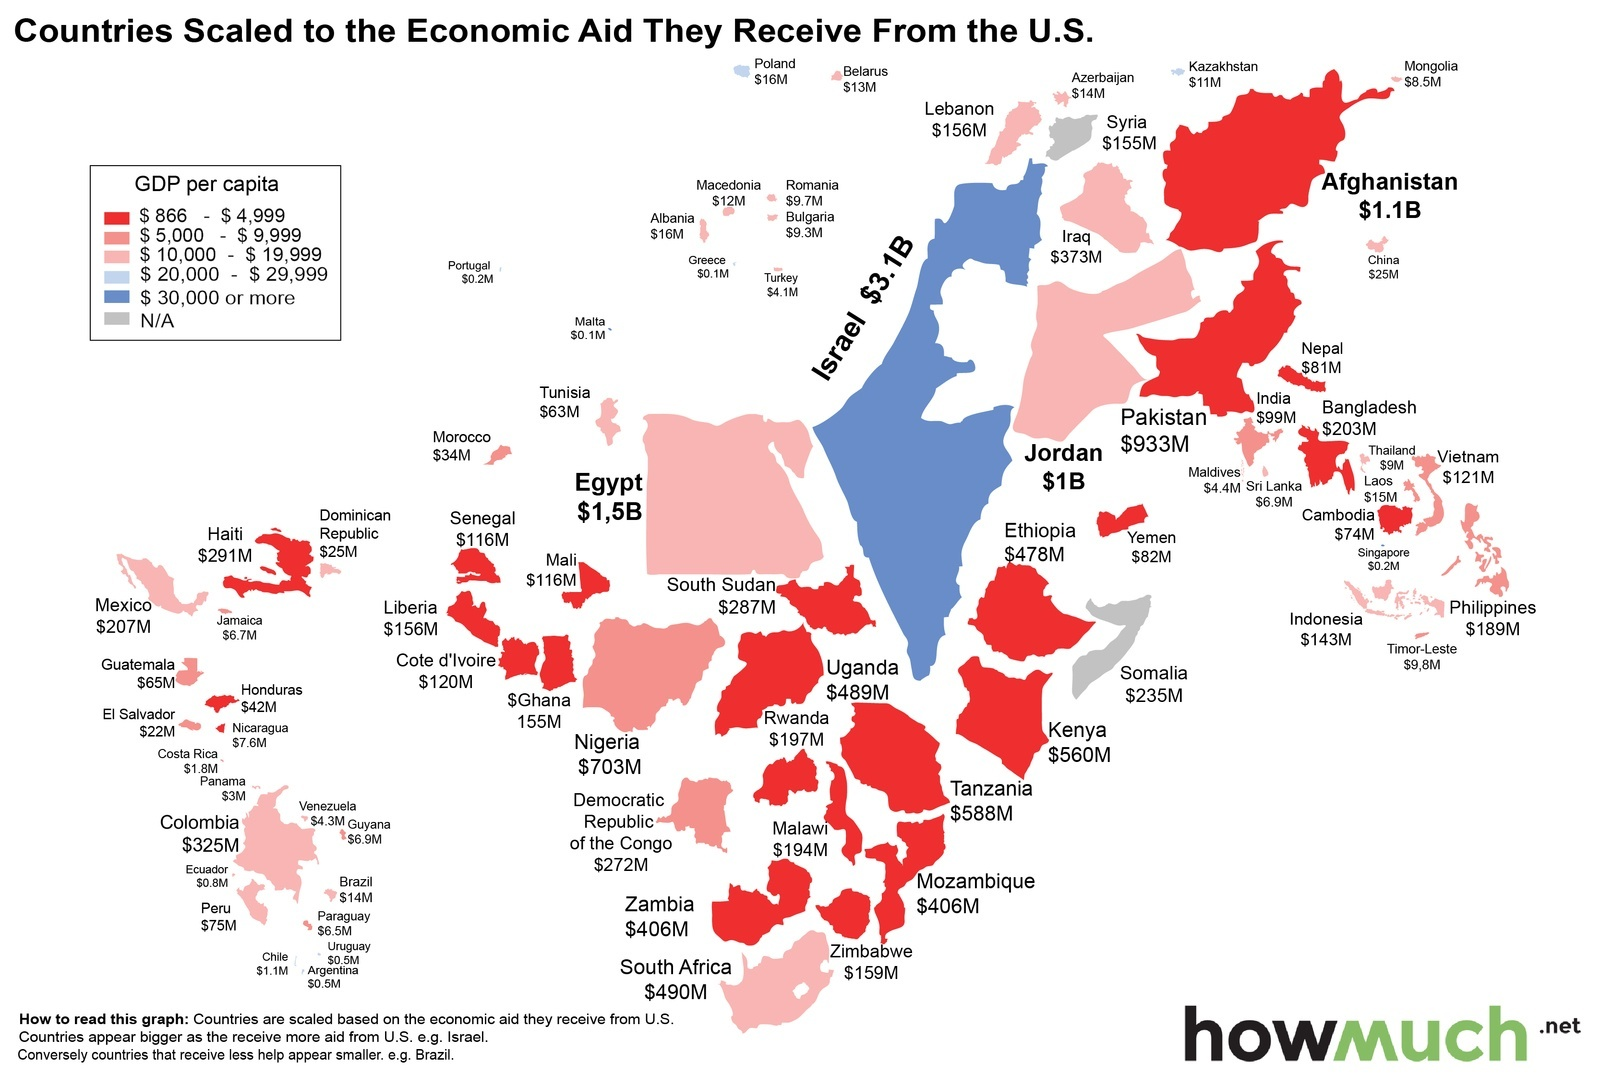 This map should change the way you think about foreign aid